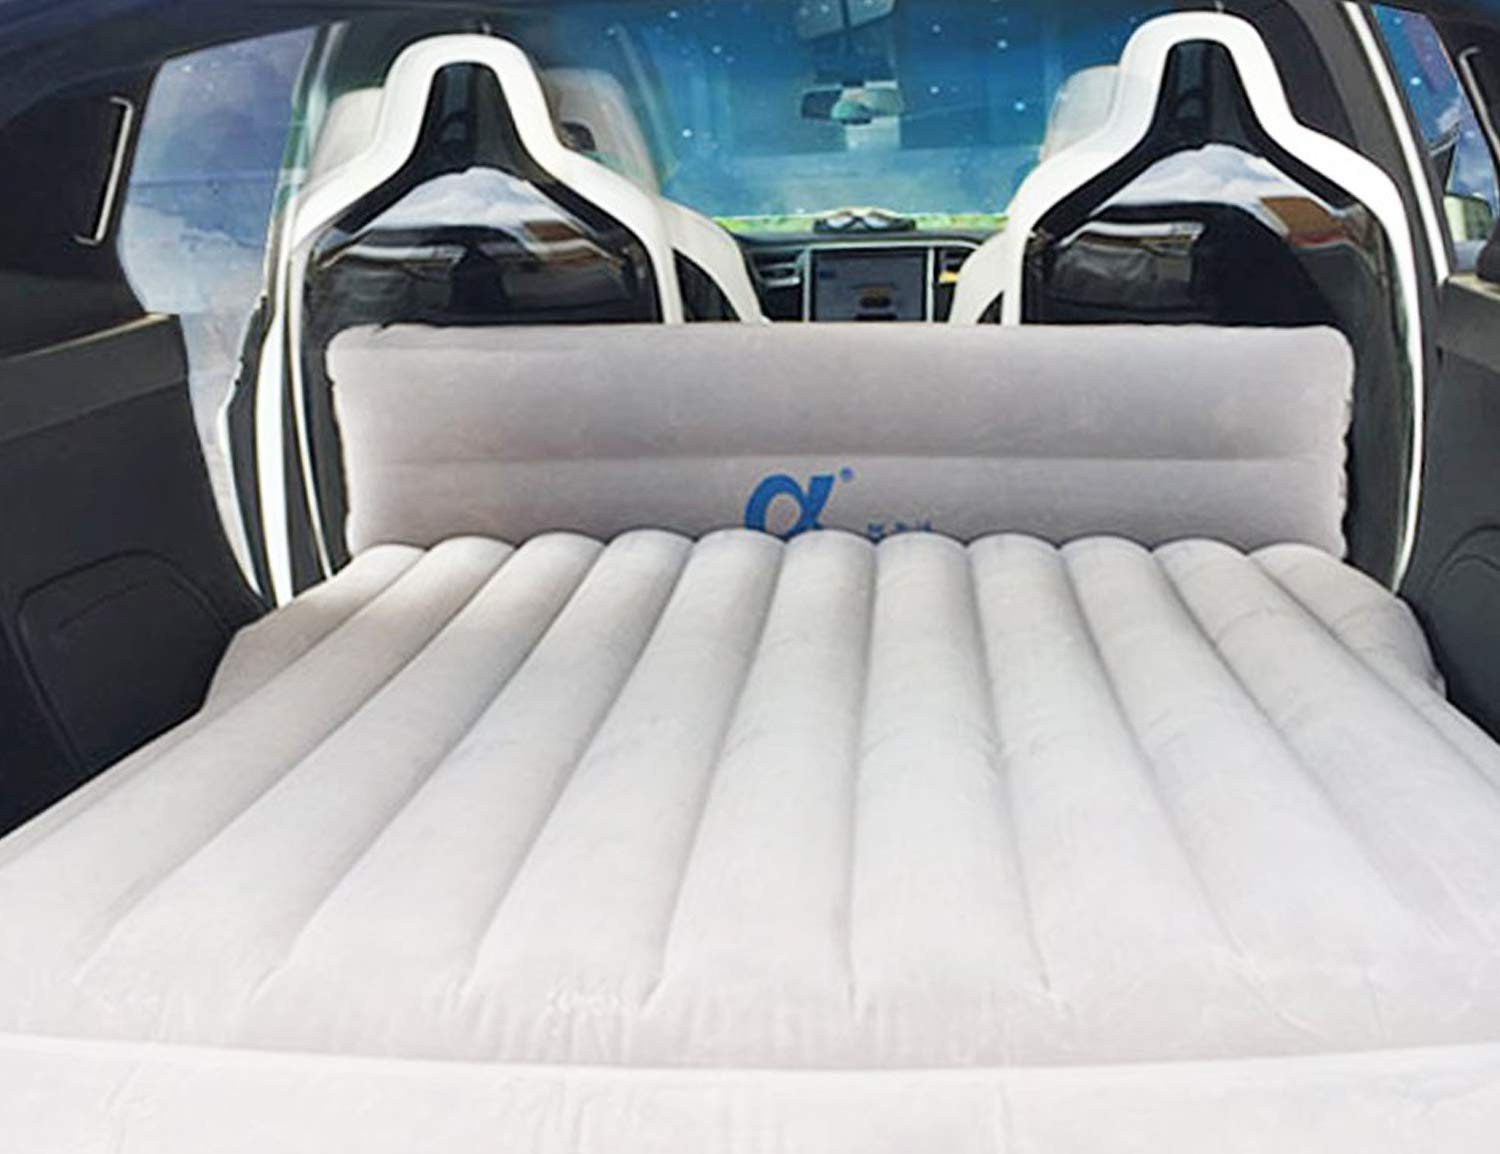 Topfit Car Camping Air Bed Car Travel Inflatable Mattress Vehicle Mount SUV Seat competible Model S and Model X 5 Seater and Model 3 by Topfit